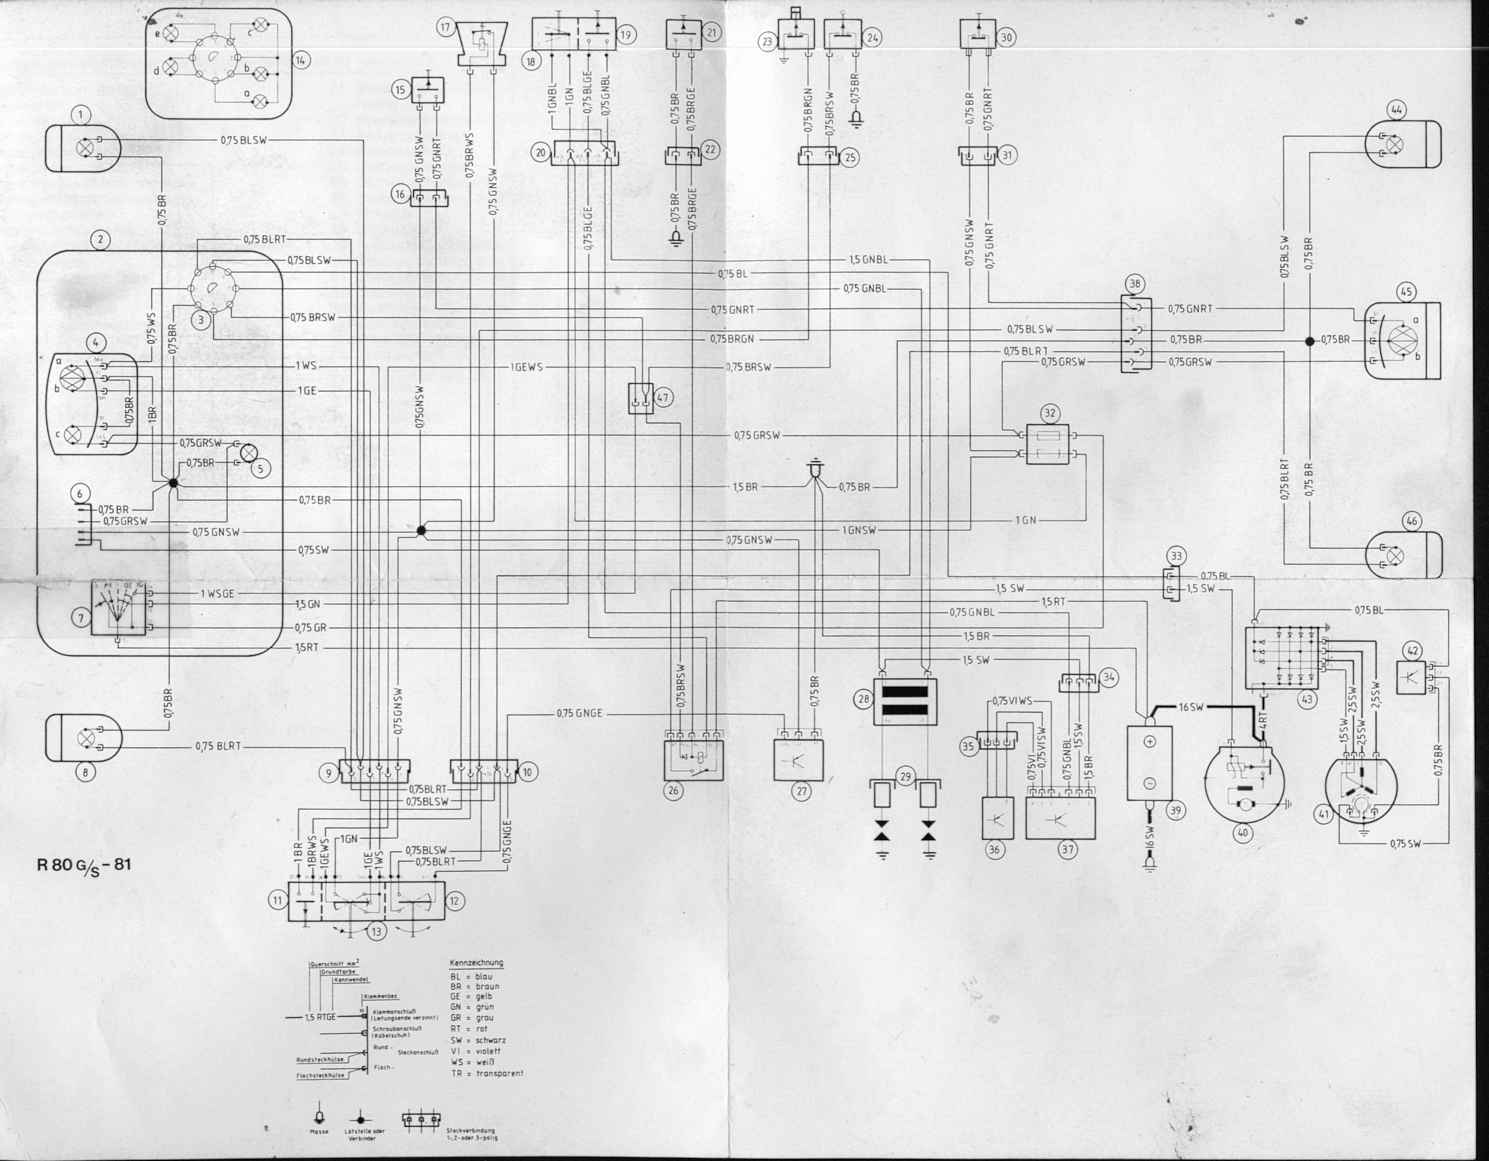 rgs wiring diagram wiring diagram and schematic haynes manual f800 700 f650 twins 06 2017